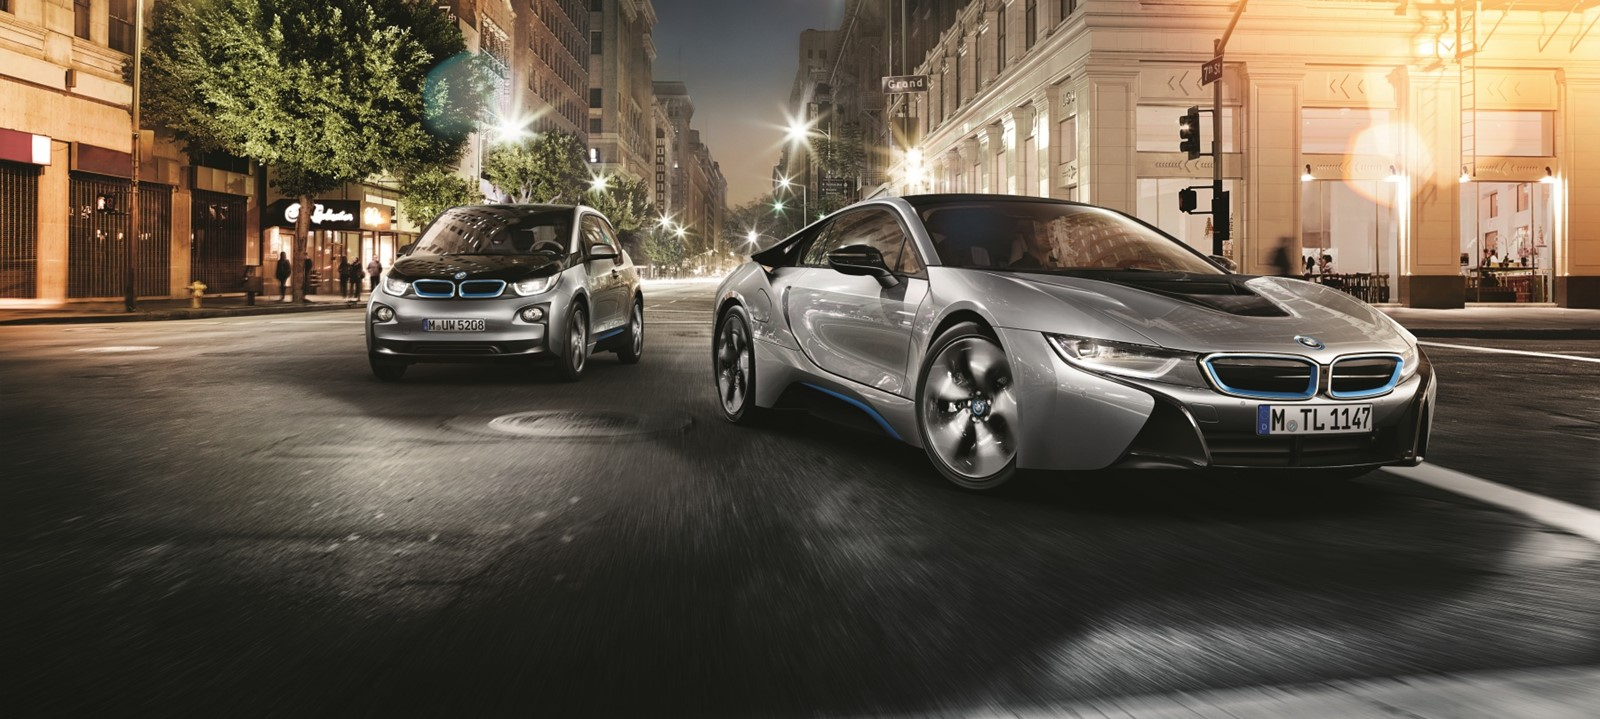 Bmwi Repairs Blue Bell Bmw